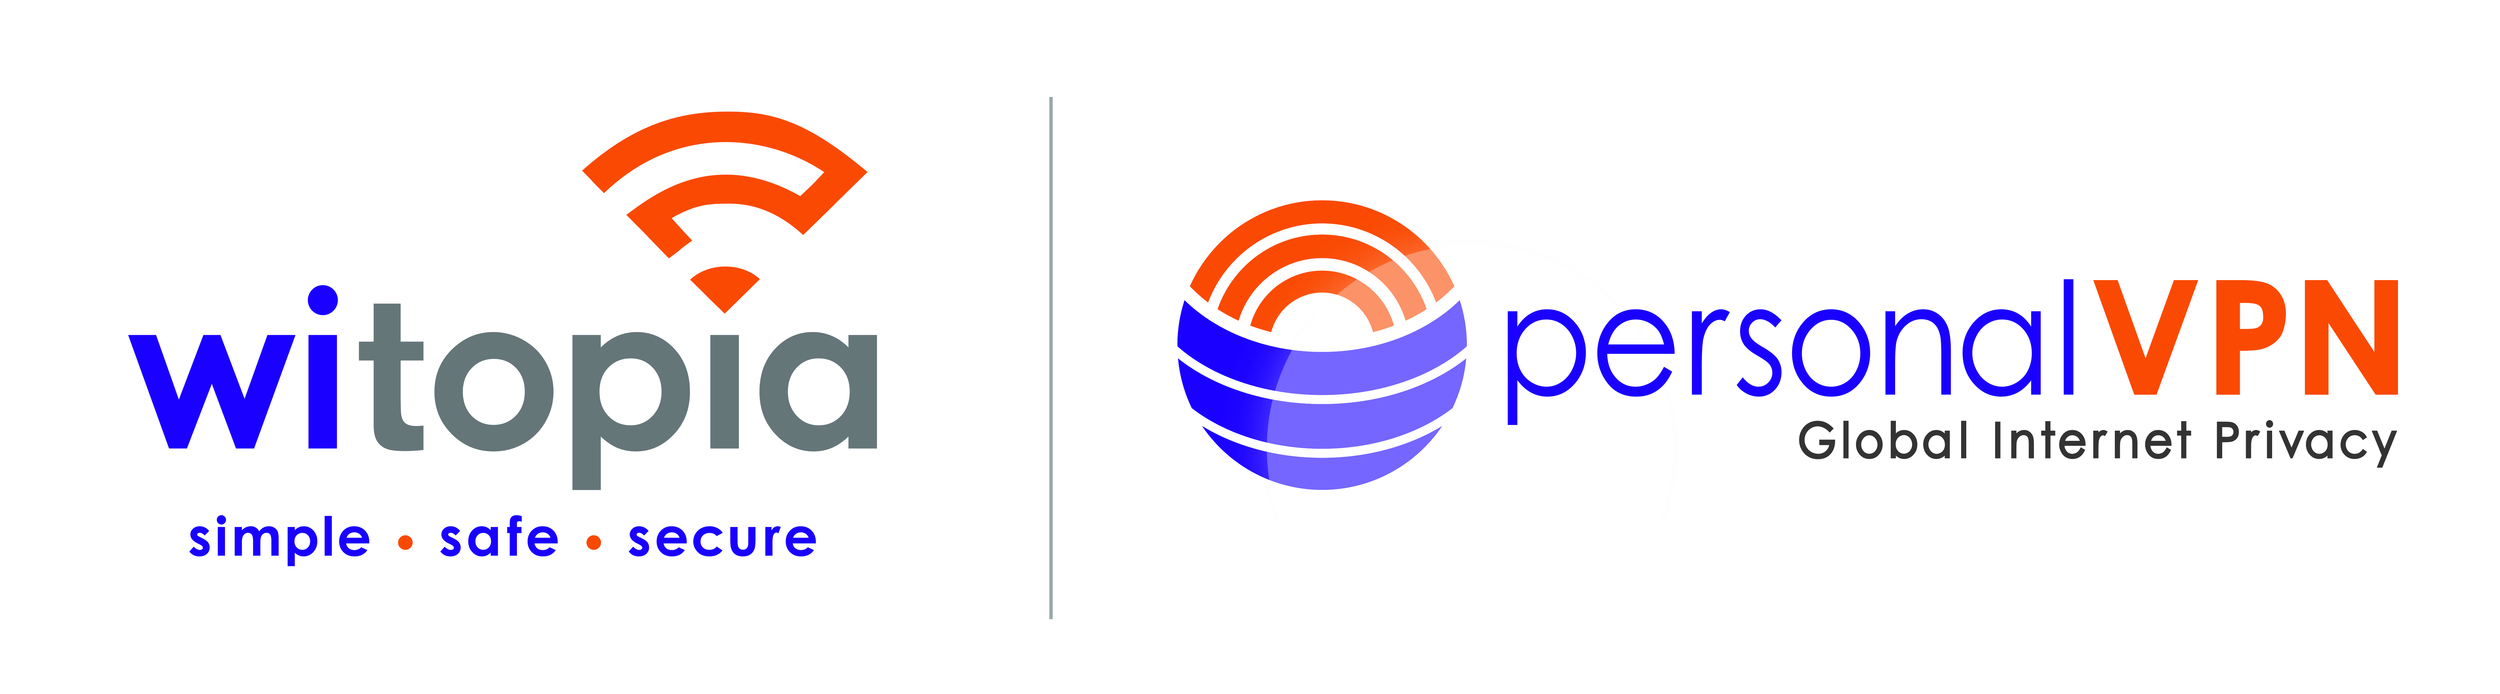 Current updated Witopia corporate logo and newly created product logo for PersonalVPN.